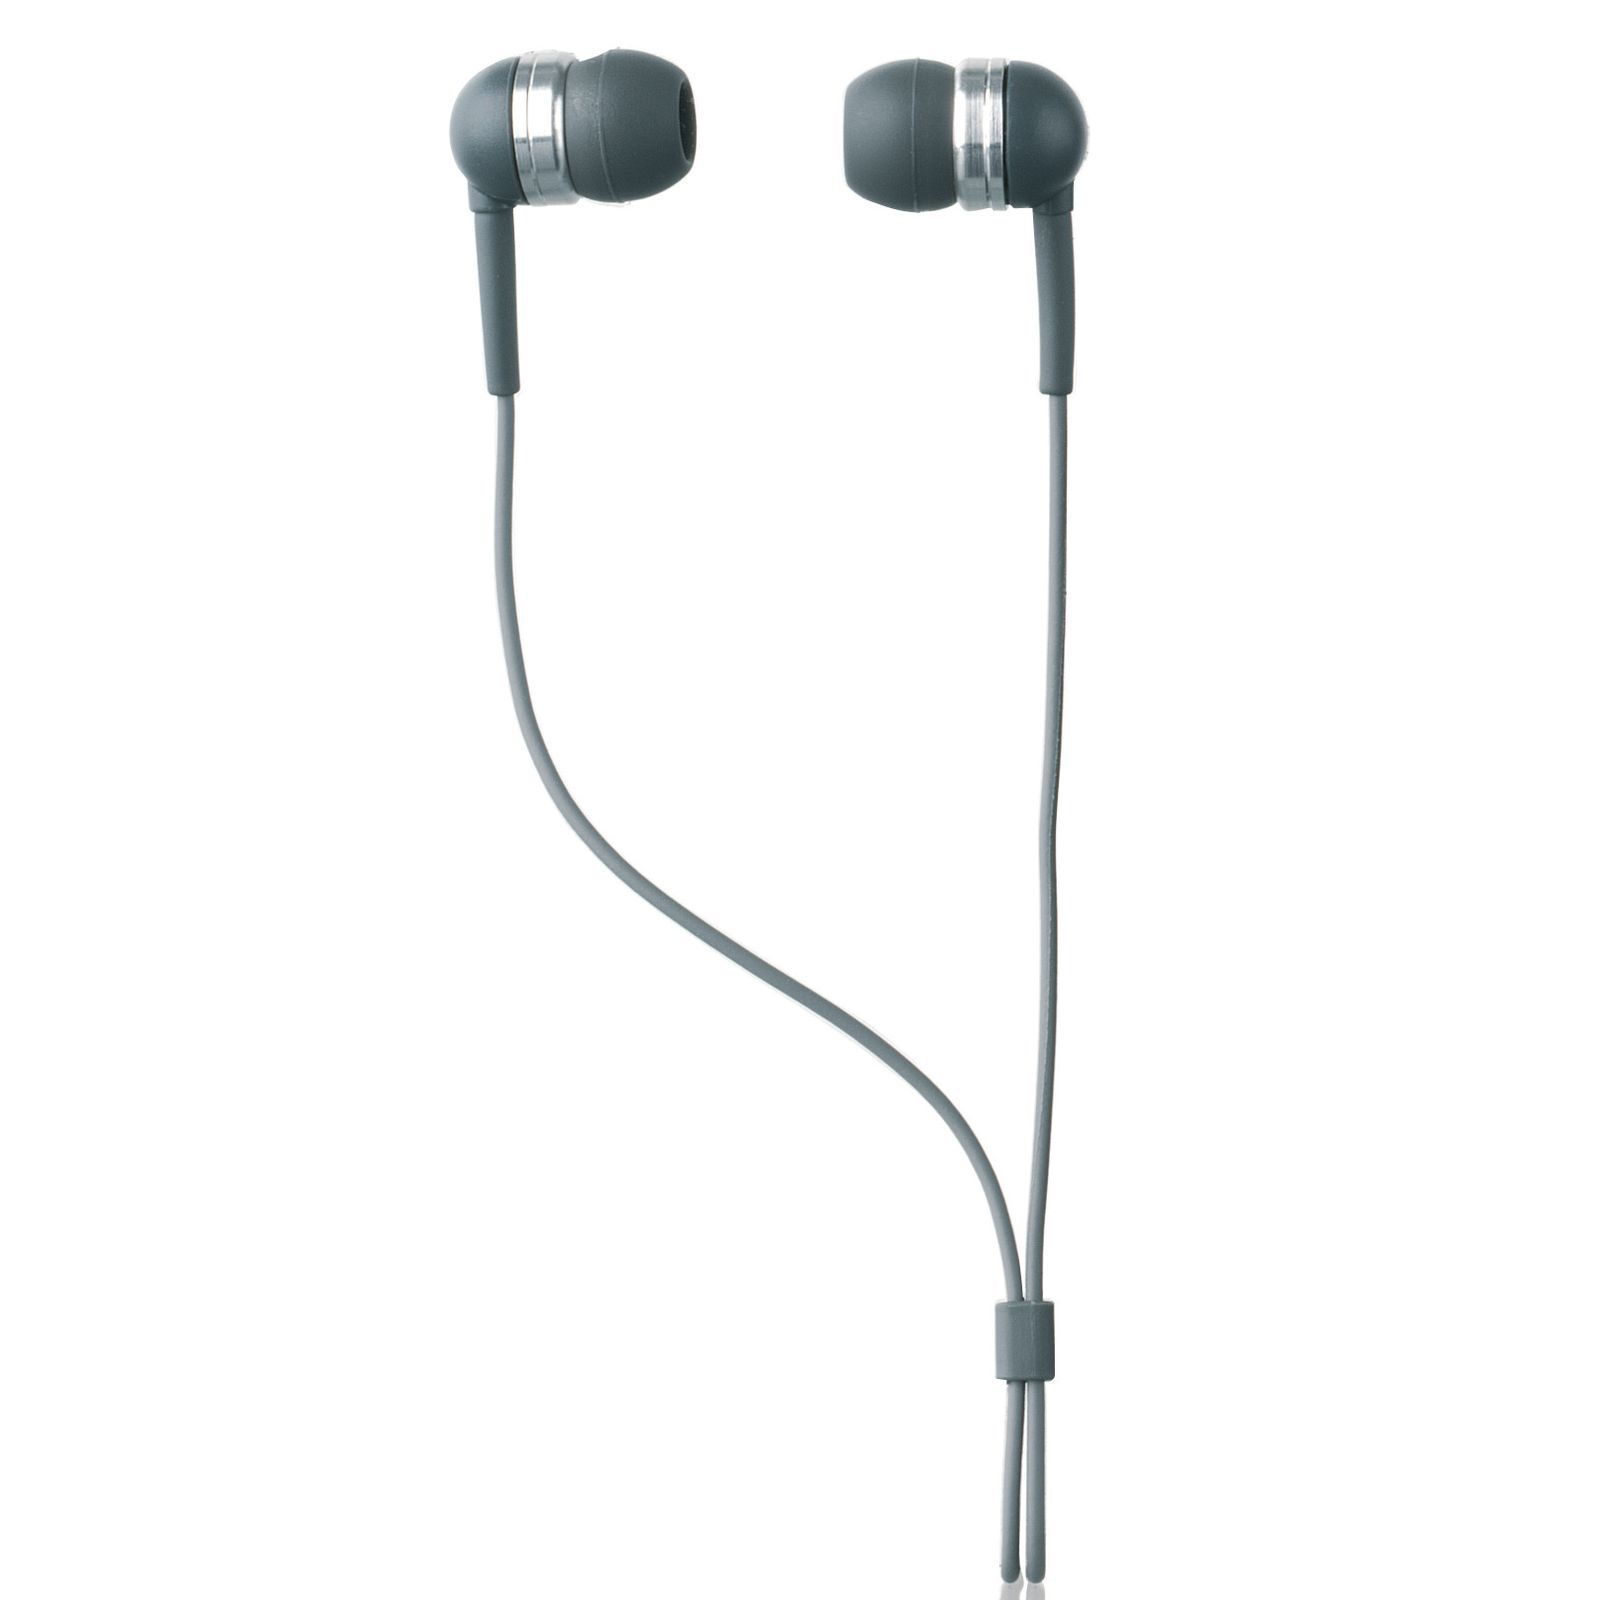 AKG IP 2 In-Ear Hörer 12 - 23500 Hz, 16 Ohm Produktbild